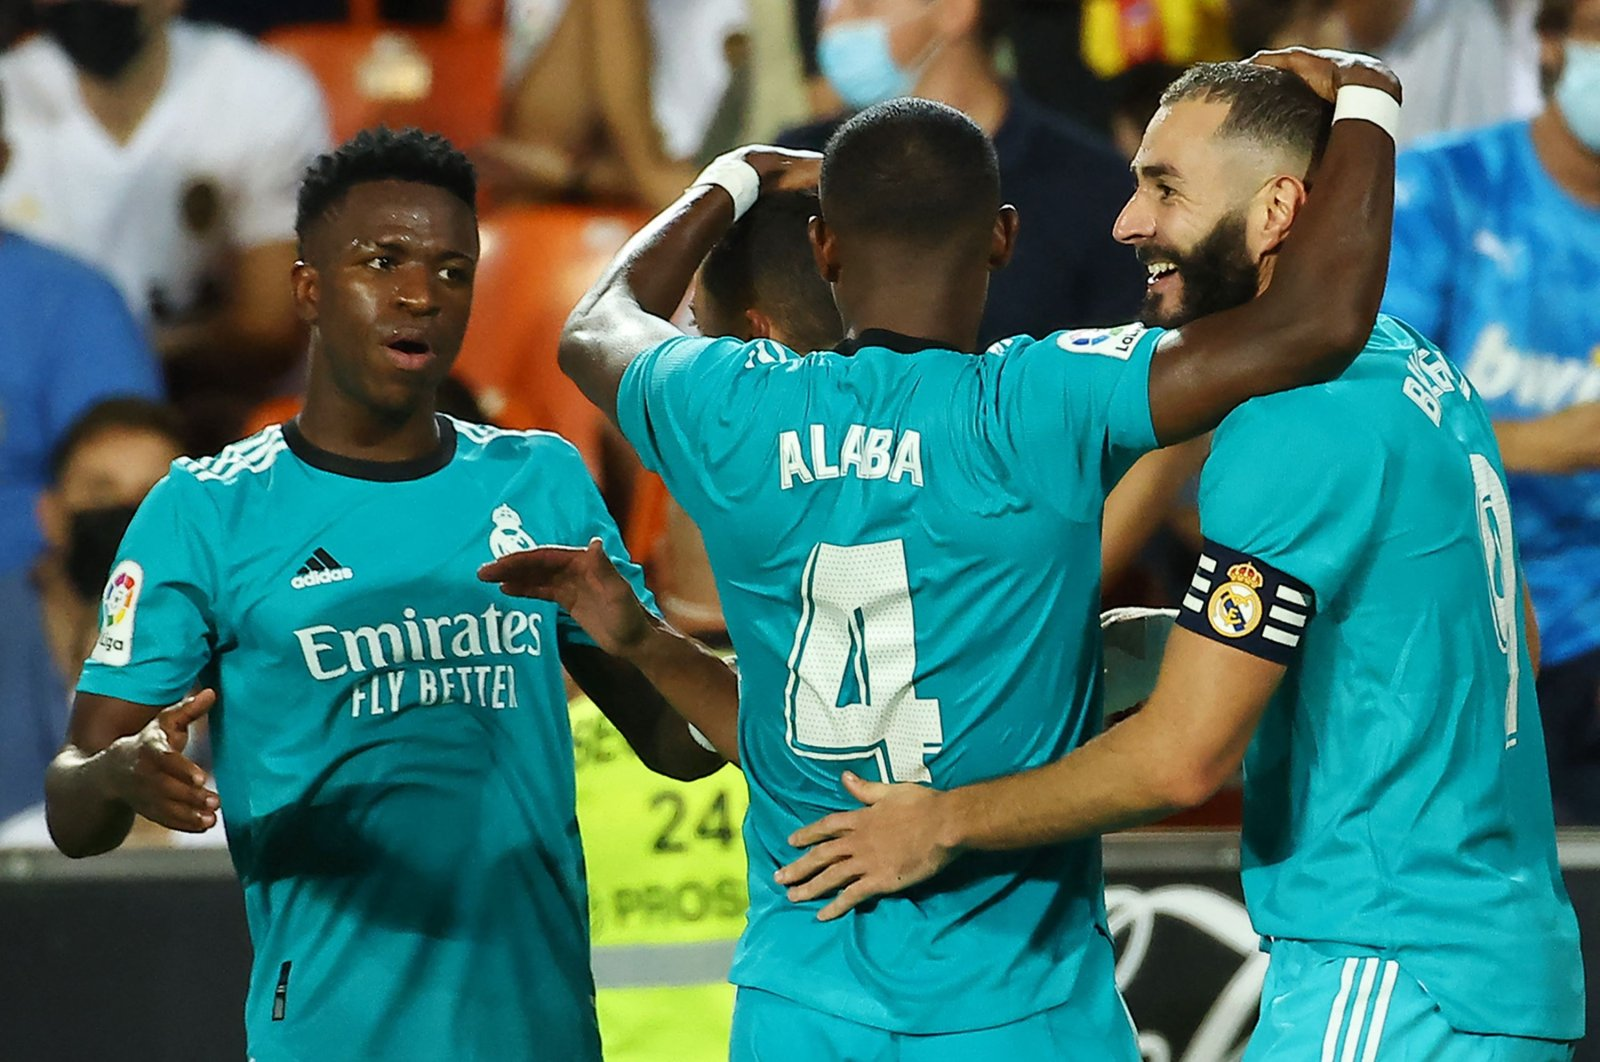 Real Madrid's Karim Benzema (R) celebrates scoring his team's second goal with teammate David Alaba and Vinicius Junior (L) during a La Liga match against Valencia, in Valencia, Spain, Sept. 19, 2021. (AFP Photo)